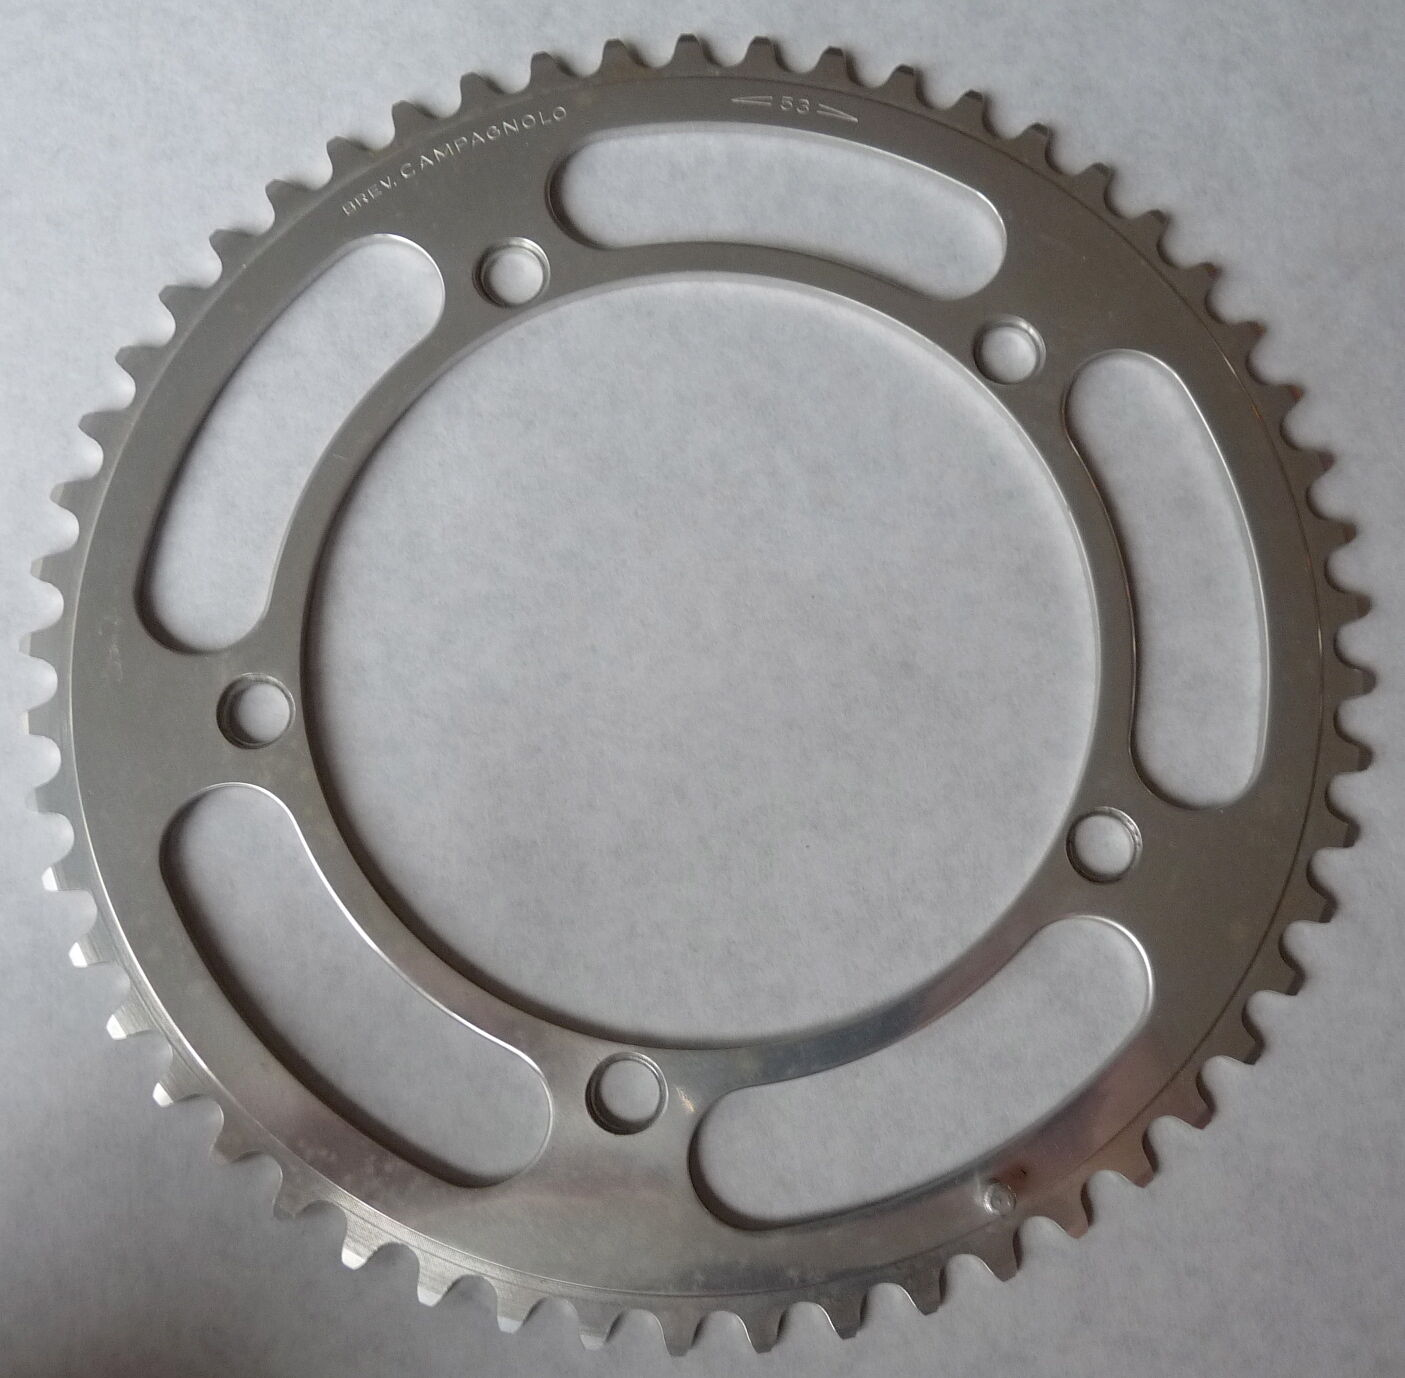 Campagnolo Nuovo Record Chainring 53T Road 144 Bcd 3 32  Vintage Bicycle NOS